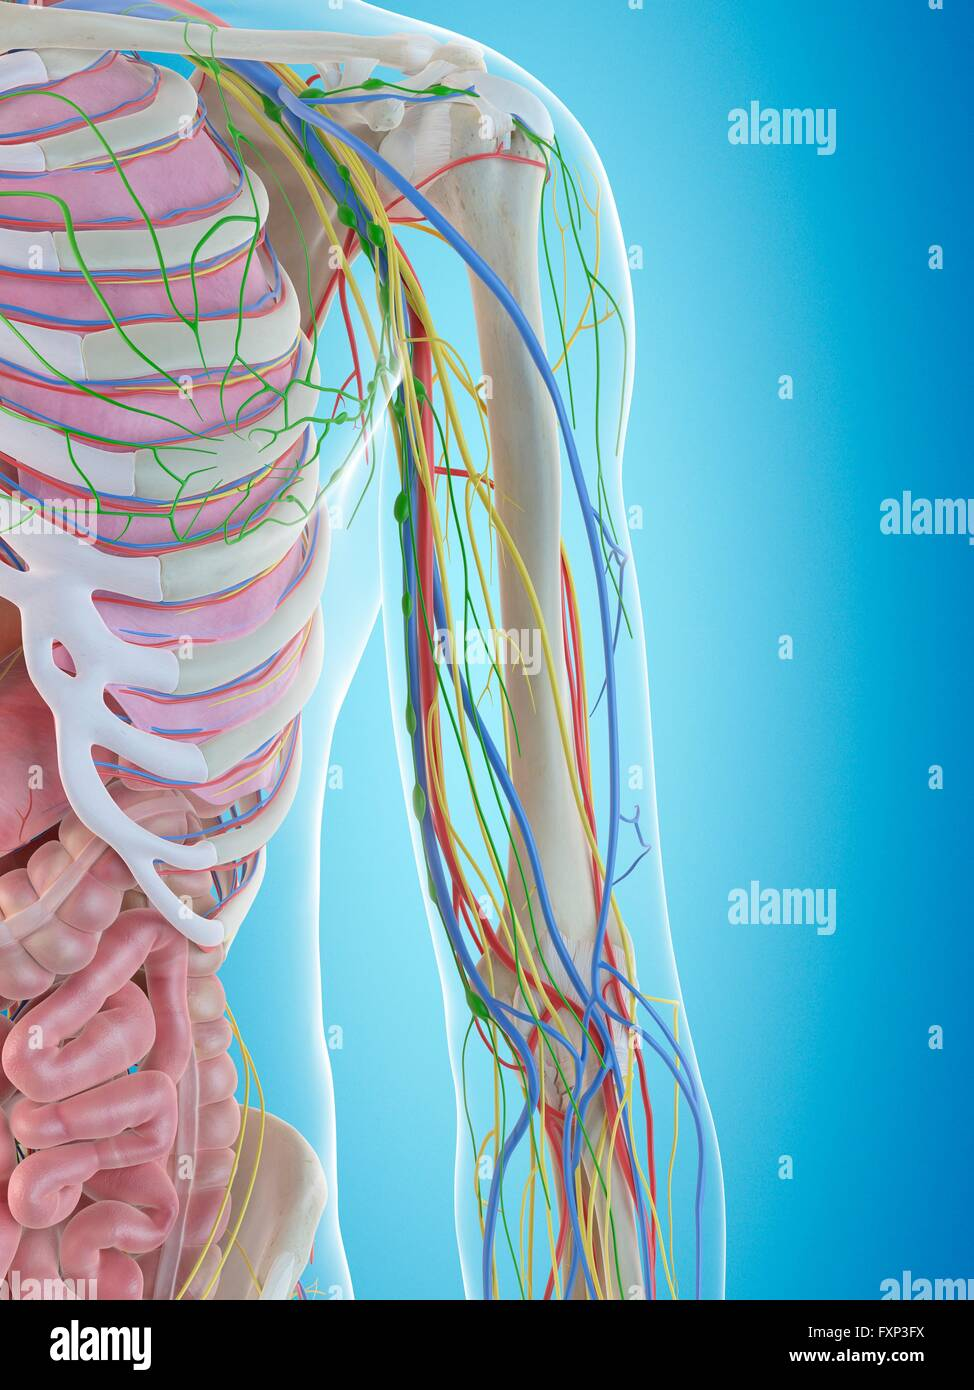 Veins Arm Stock Photos Veins Arm Stock Images Alamy